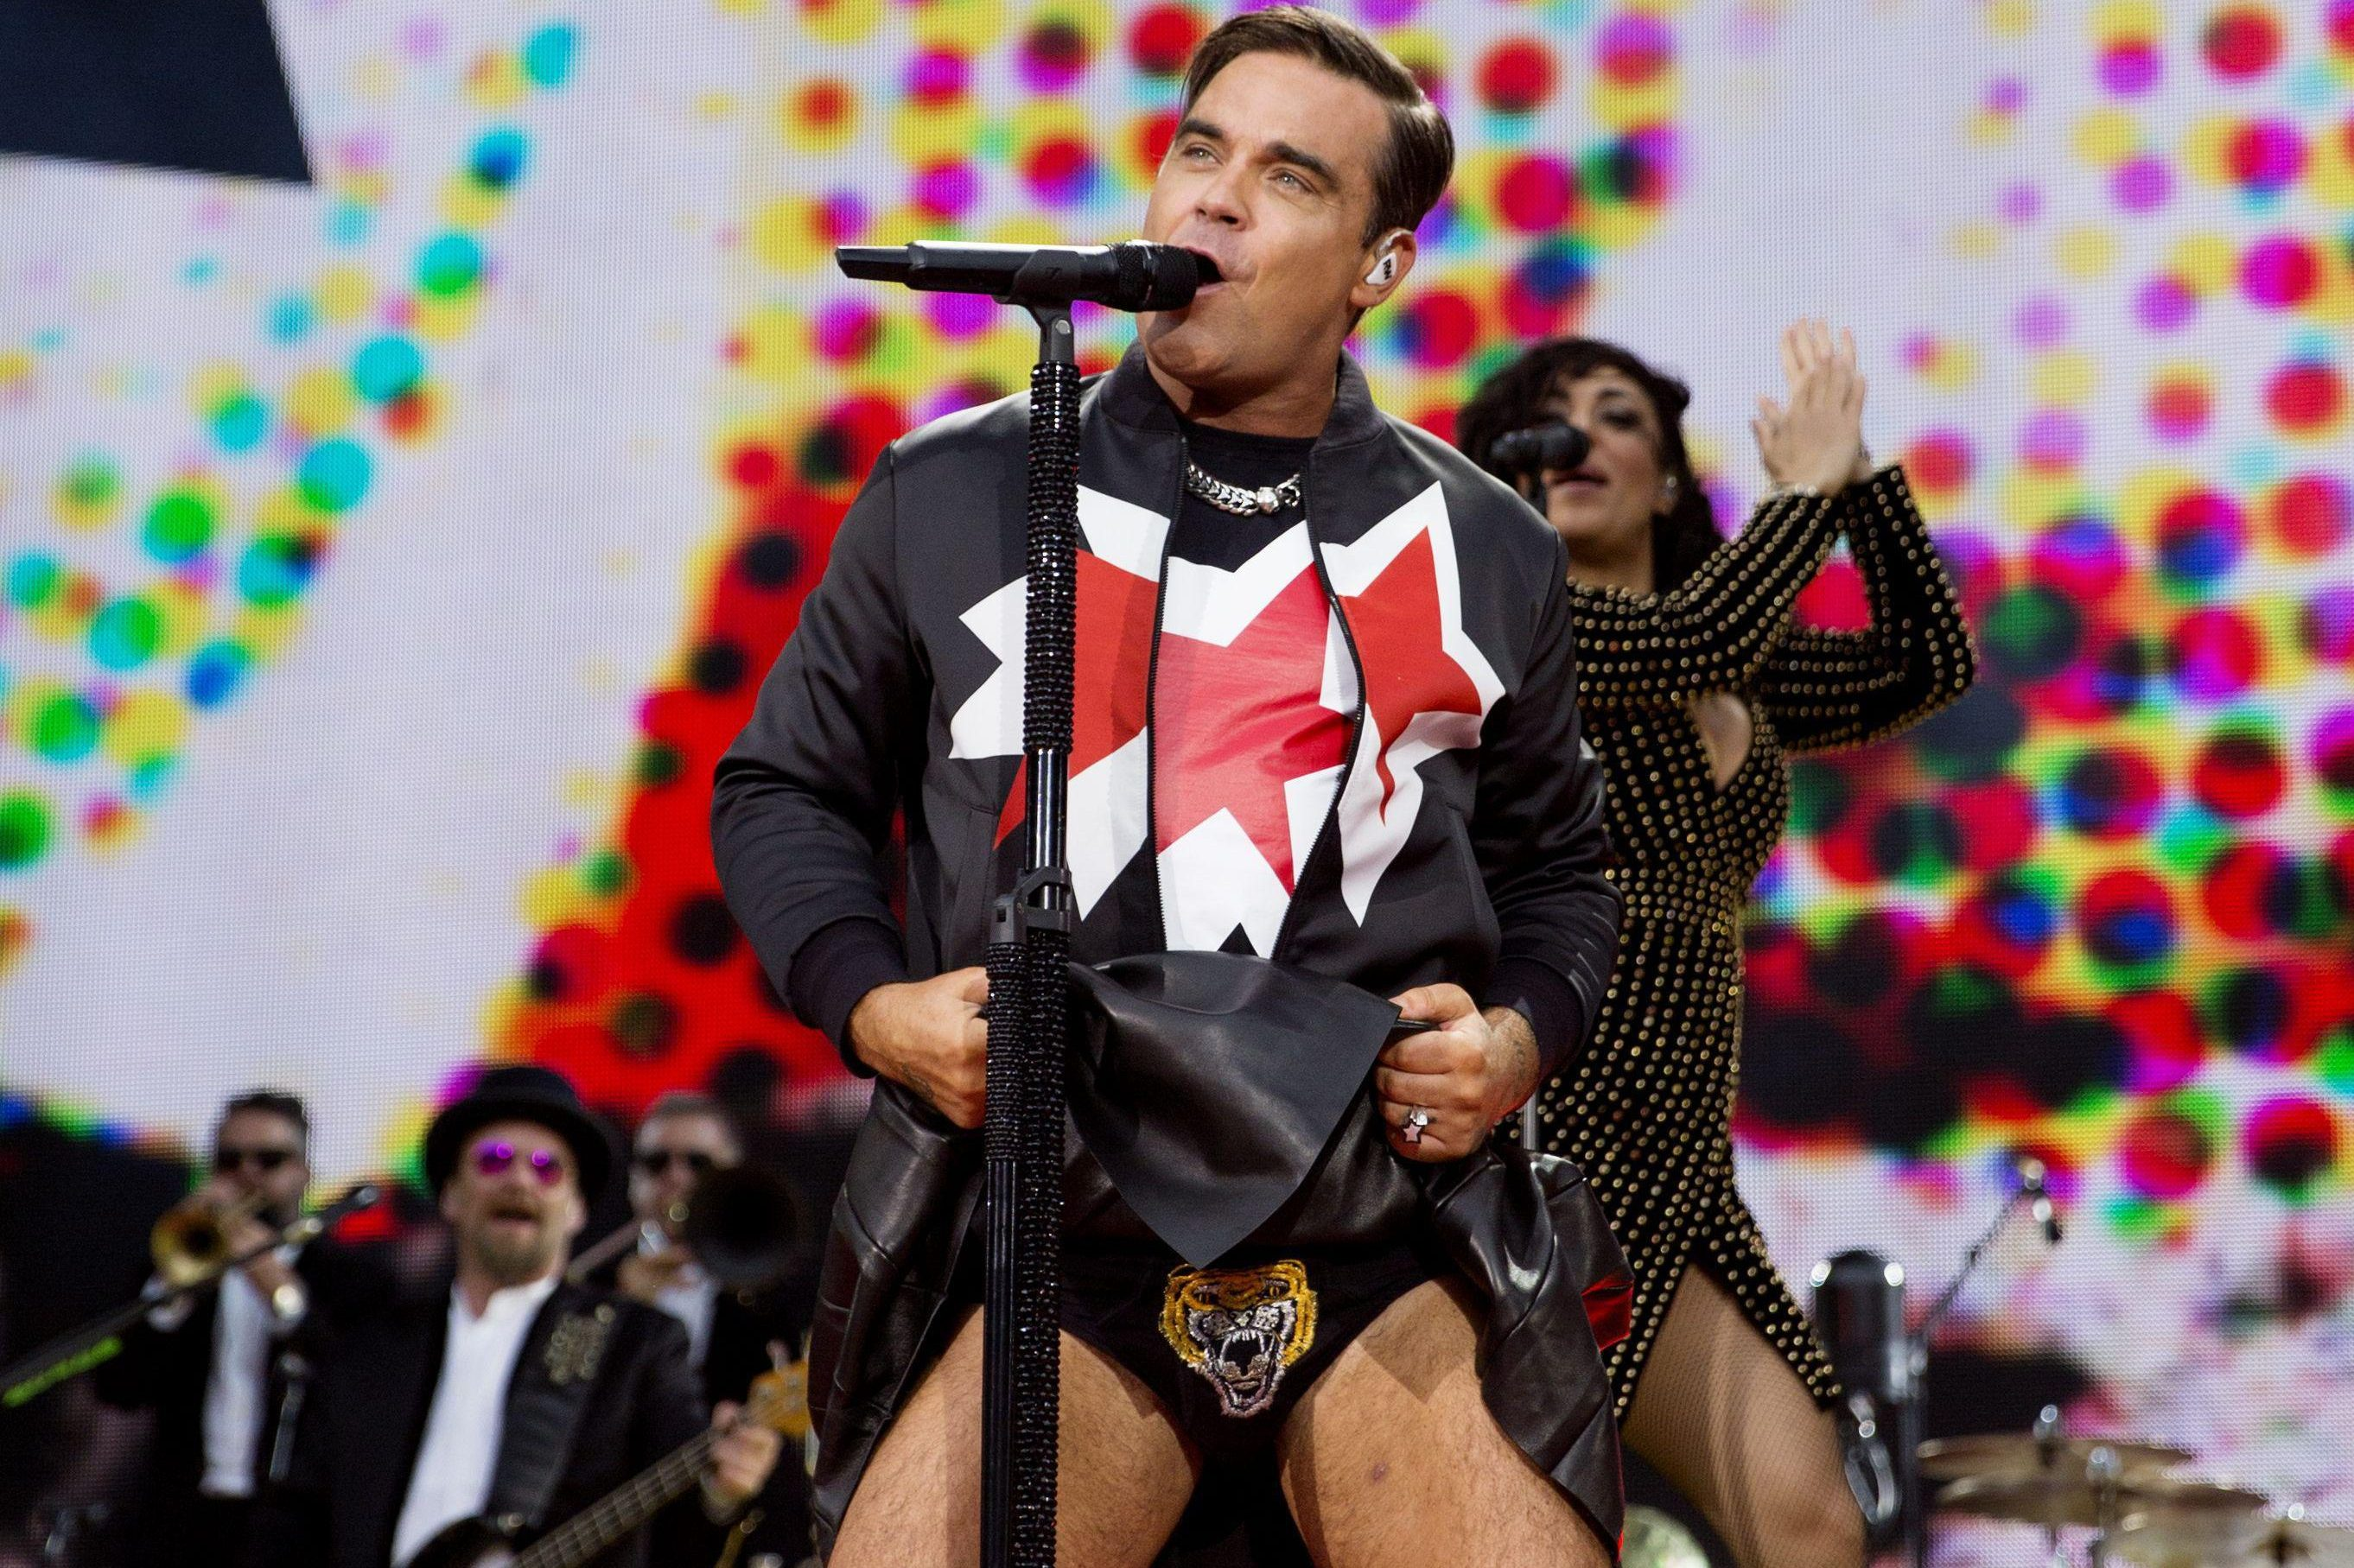 Robbie Williams Proves Hes Still The King Of Pop With Hit After Hit